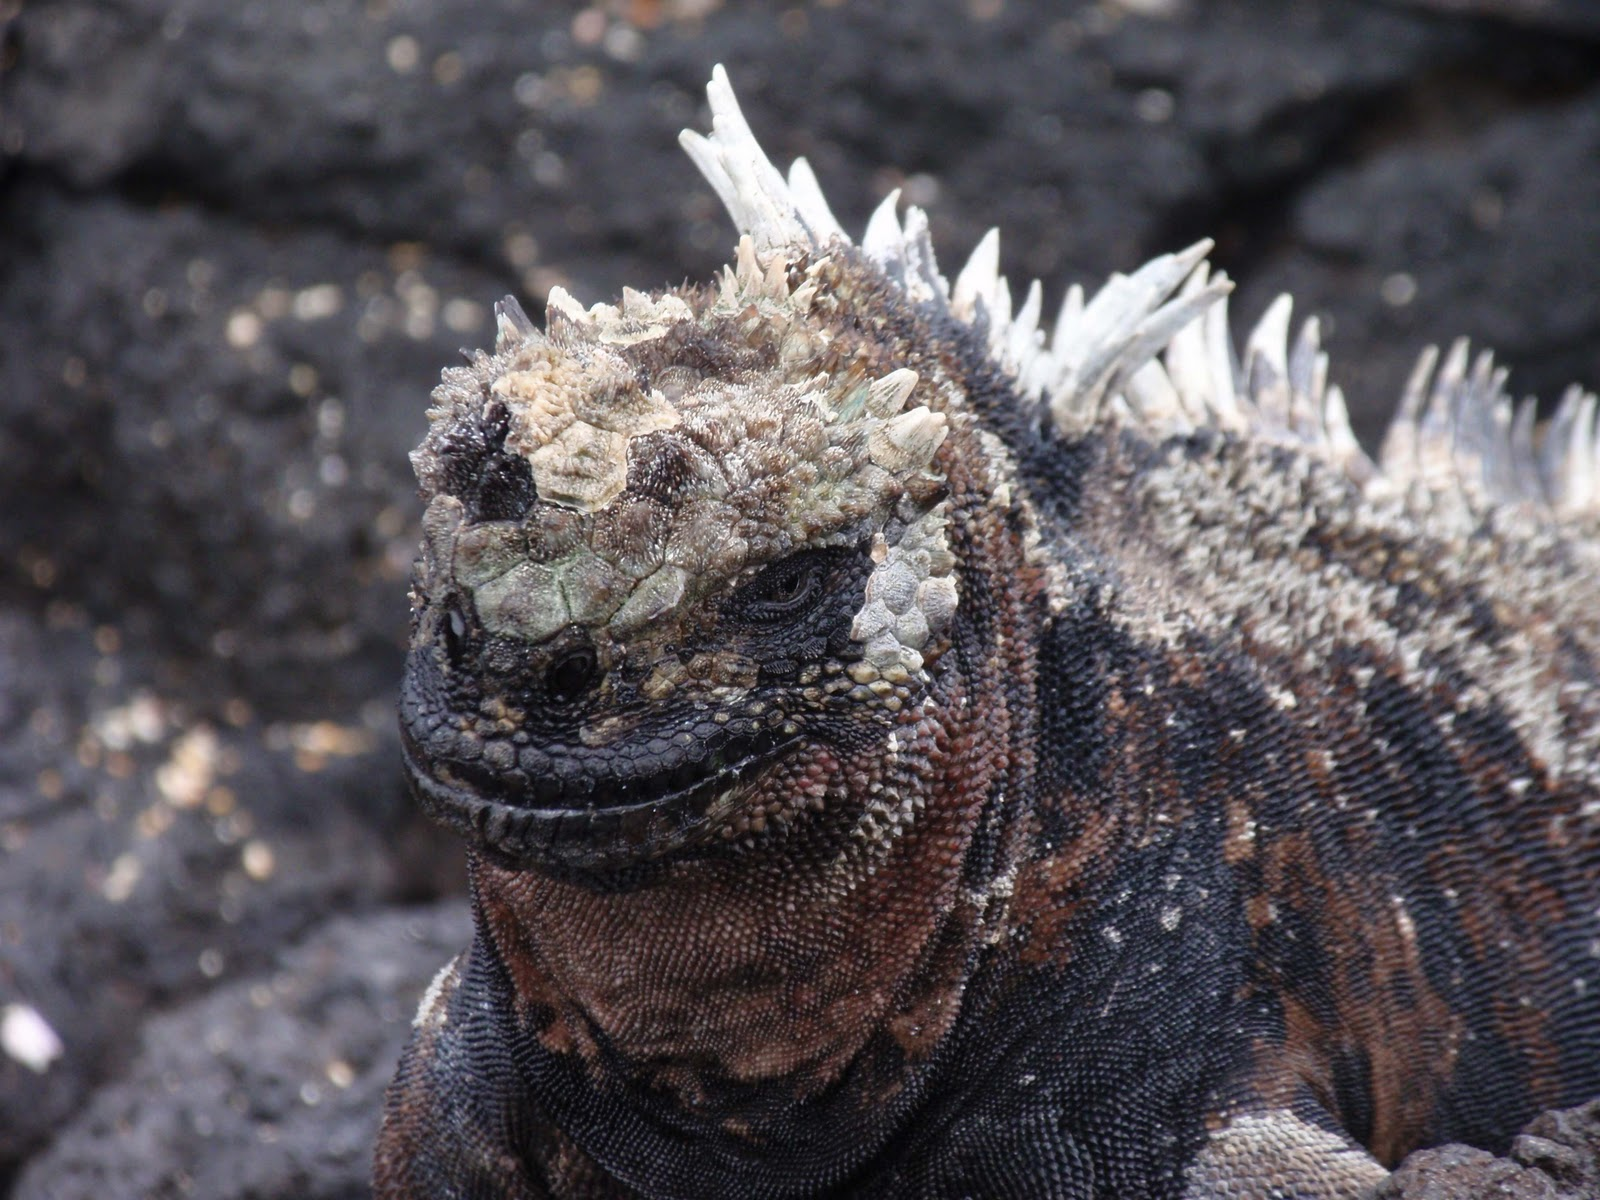 Ms. Gerharz Goes to the Galapagos: Some pictures of the ...